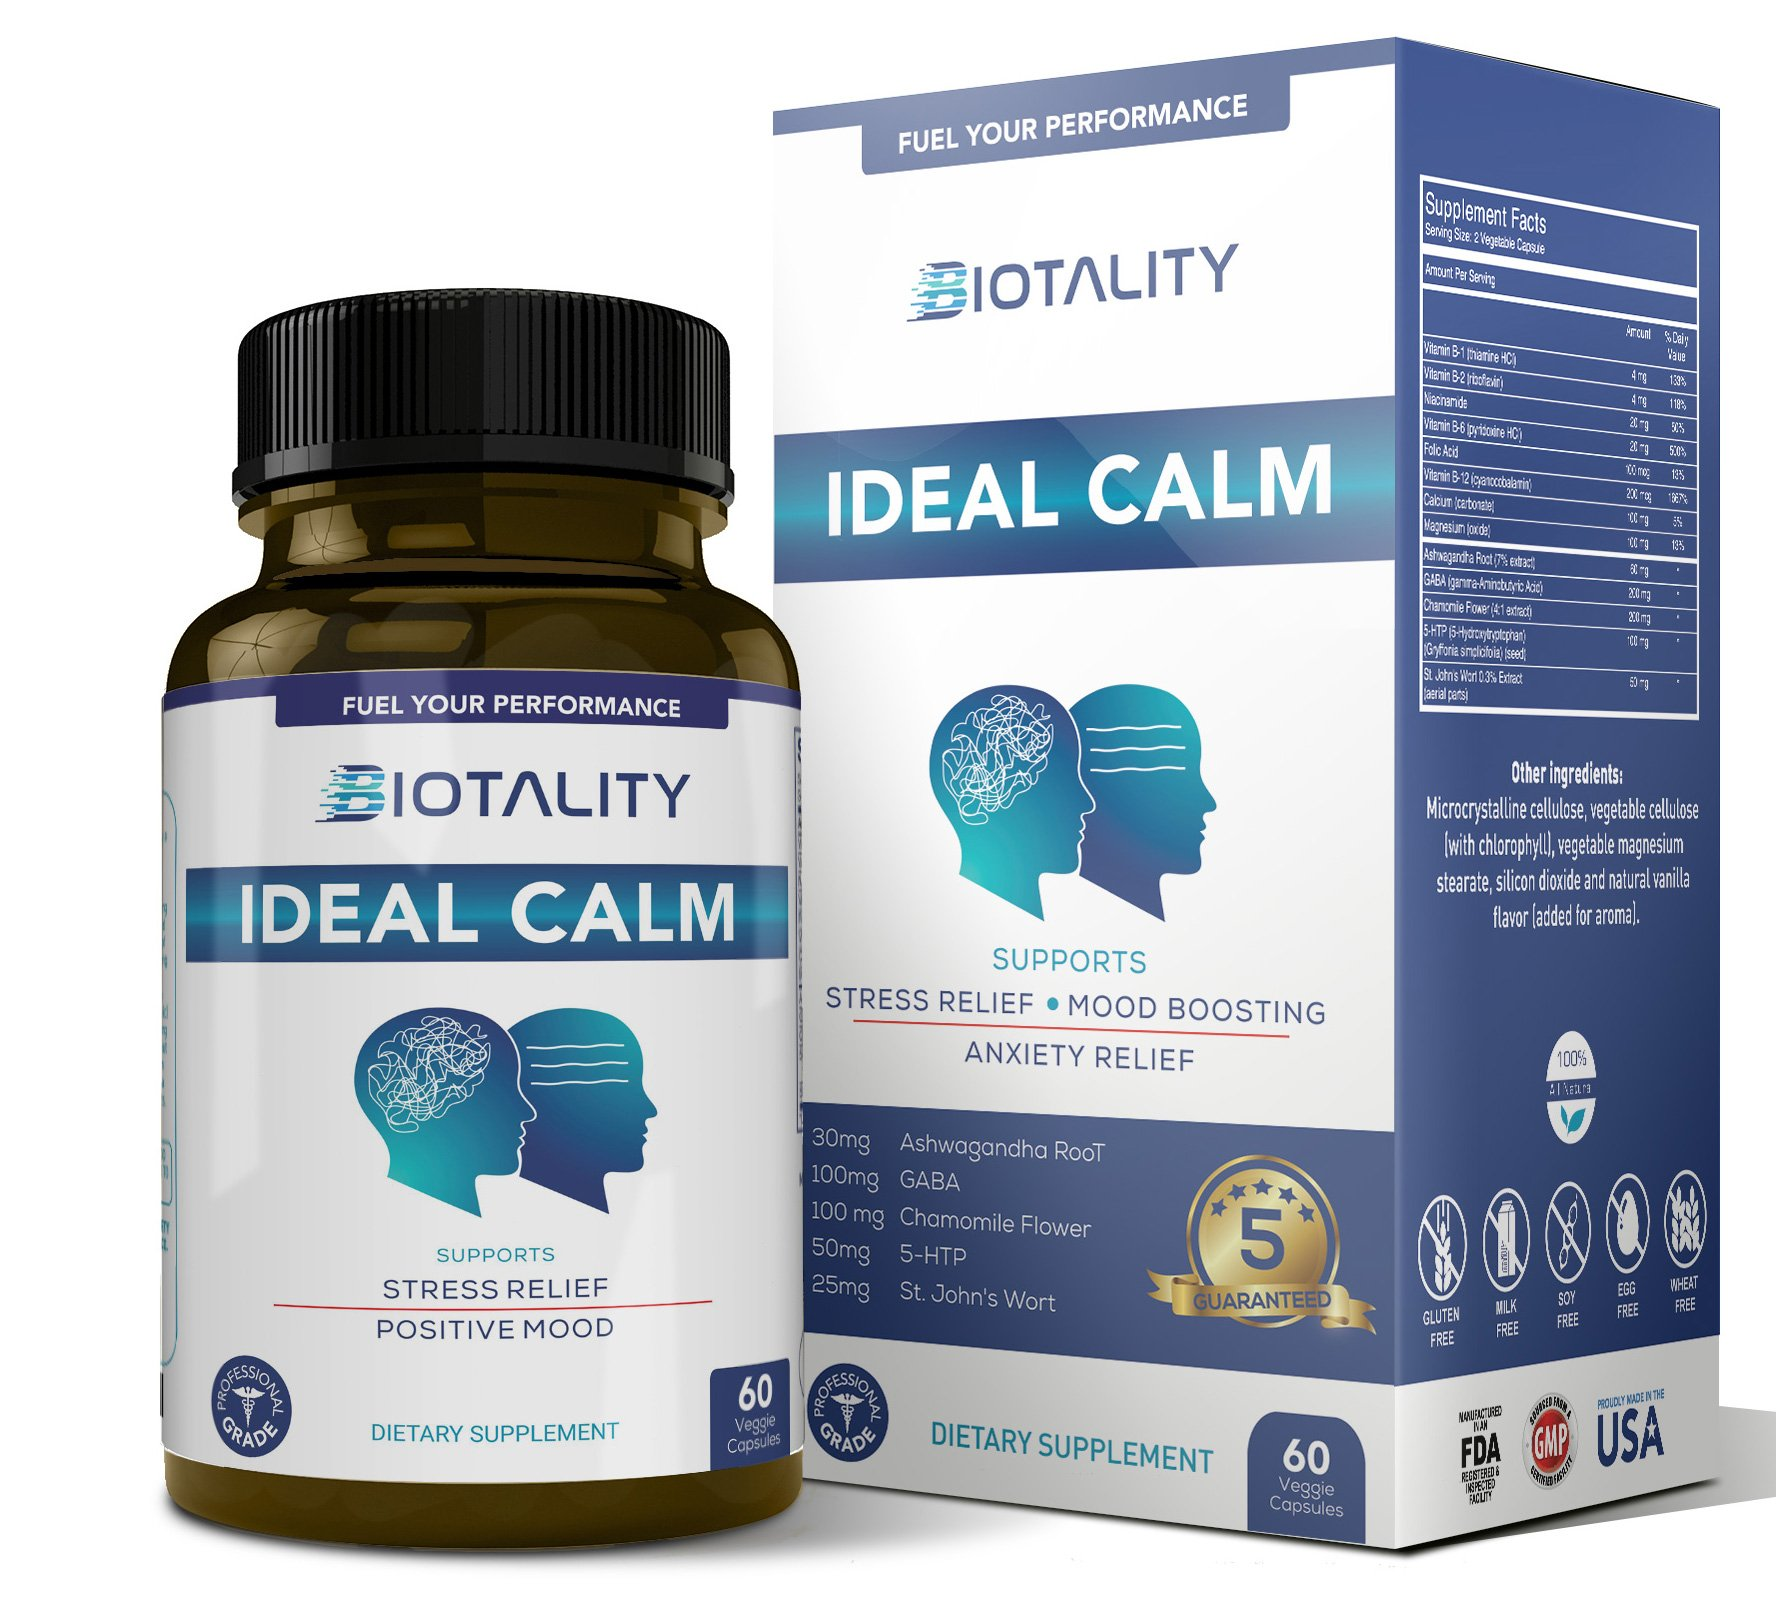 Ideal Calm Mood Support Supplement - All Natural Stress and Anxiety Relief. Scientifically Formulated to Boost Positive Mood and Manage Stress; with Ashwagandha, Chamomile, St. John's Wort